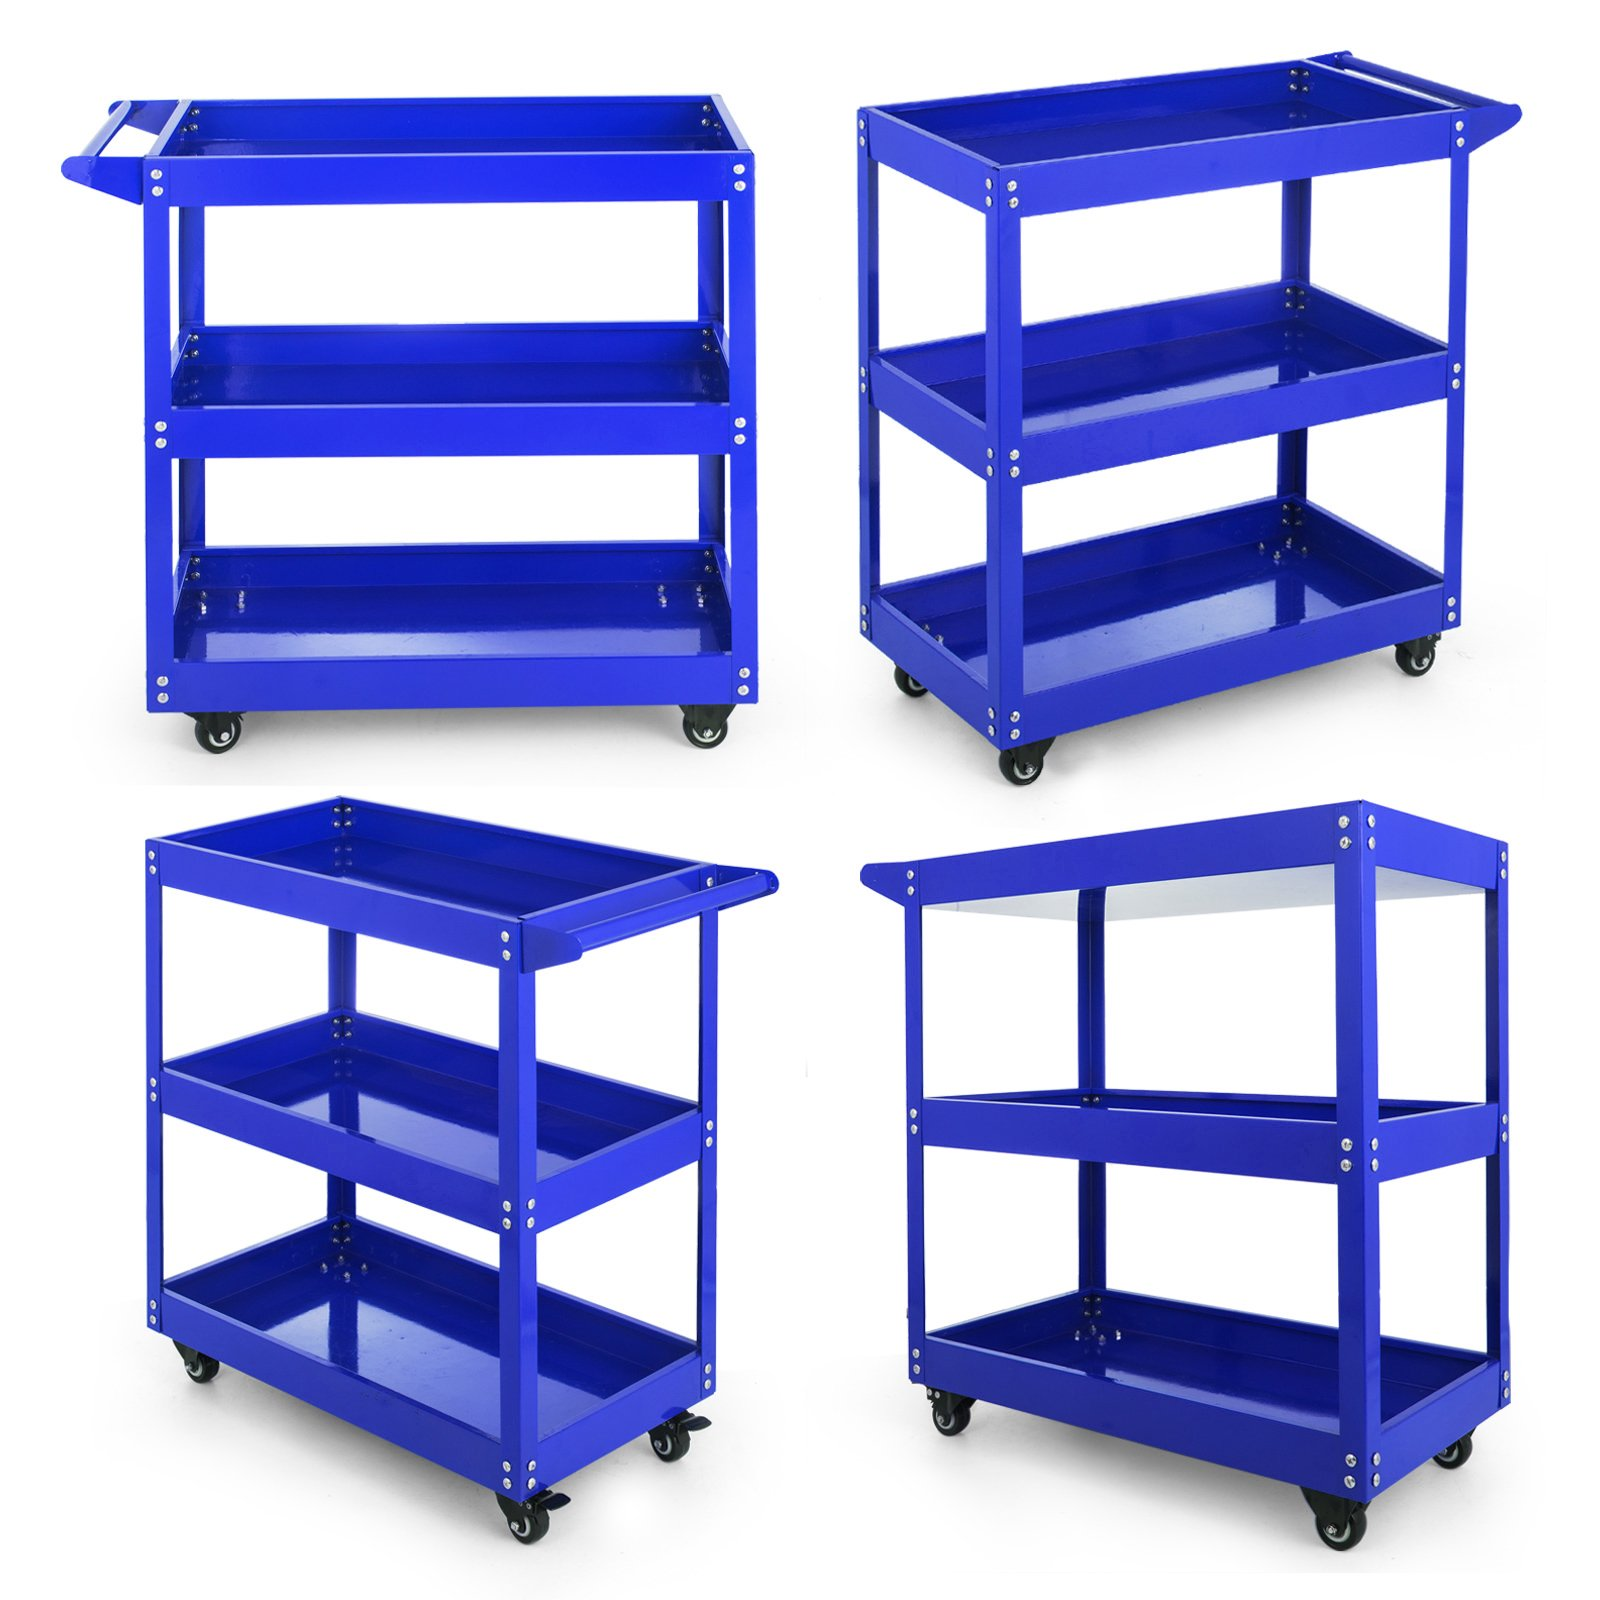 Popsport Utility Tub Cart Series 3-Tier Tool Cart Rolling Metal Tool Cart Heavy Duty Tool Cart with Handles and Rolling Caster Wheels for Transporting (103A Blue)